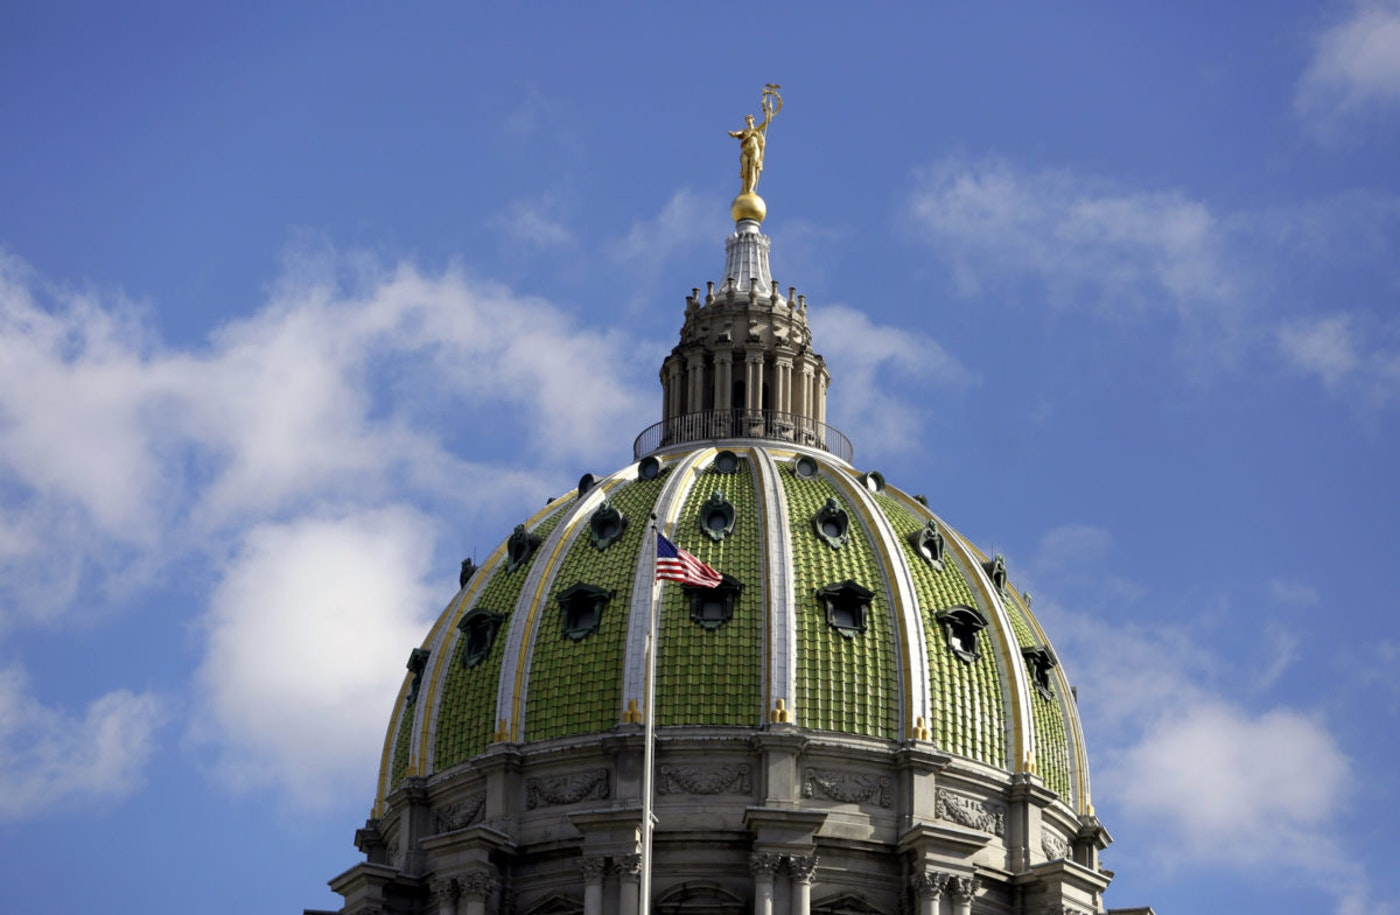 The American flag flies at the Pennsylvania State Capitol building Oct. 24, 2018, in Harrisburg, Pa. (AP Photo/Jacqueline Larma)